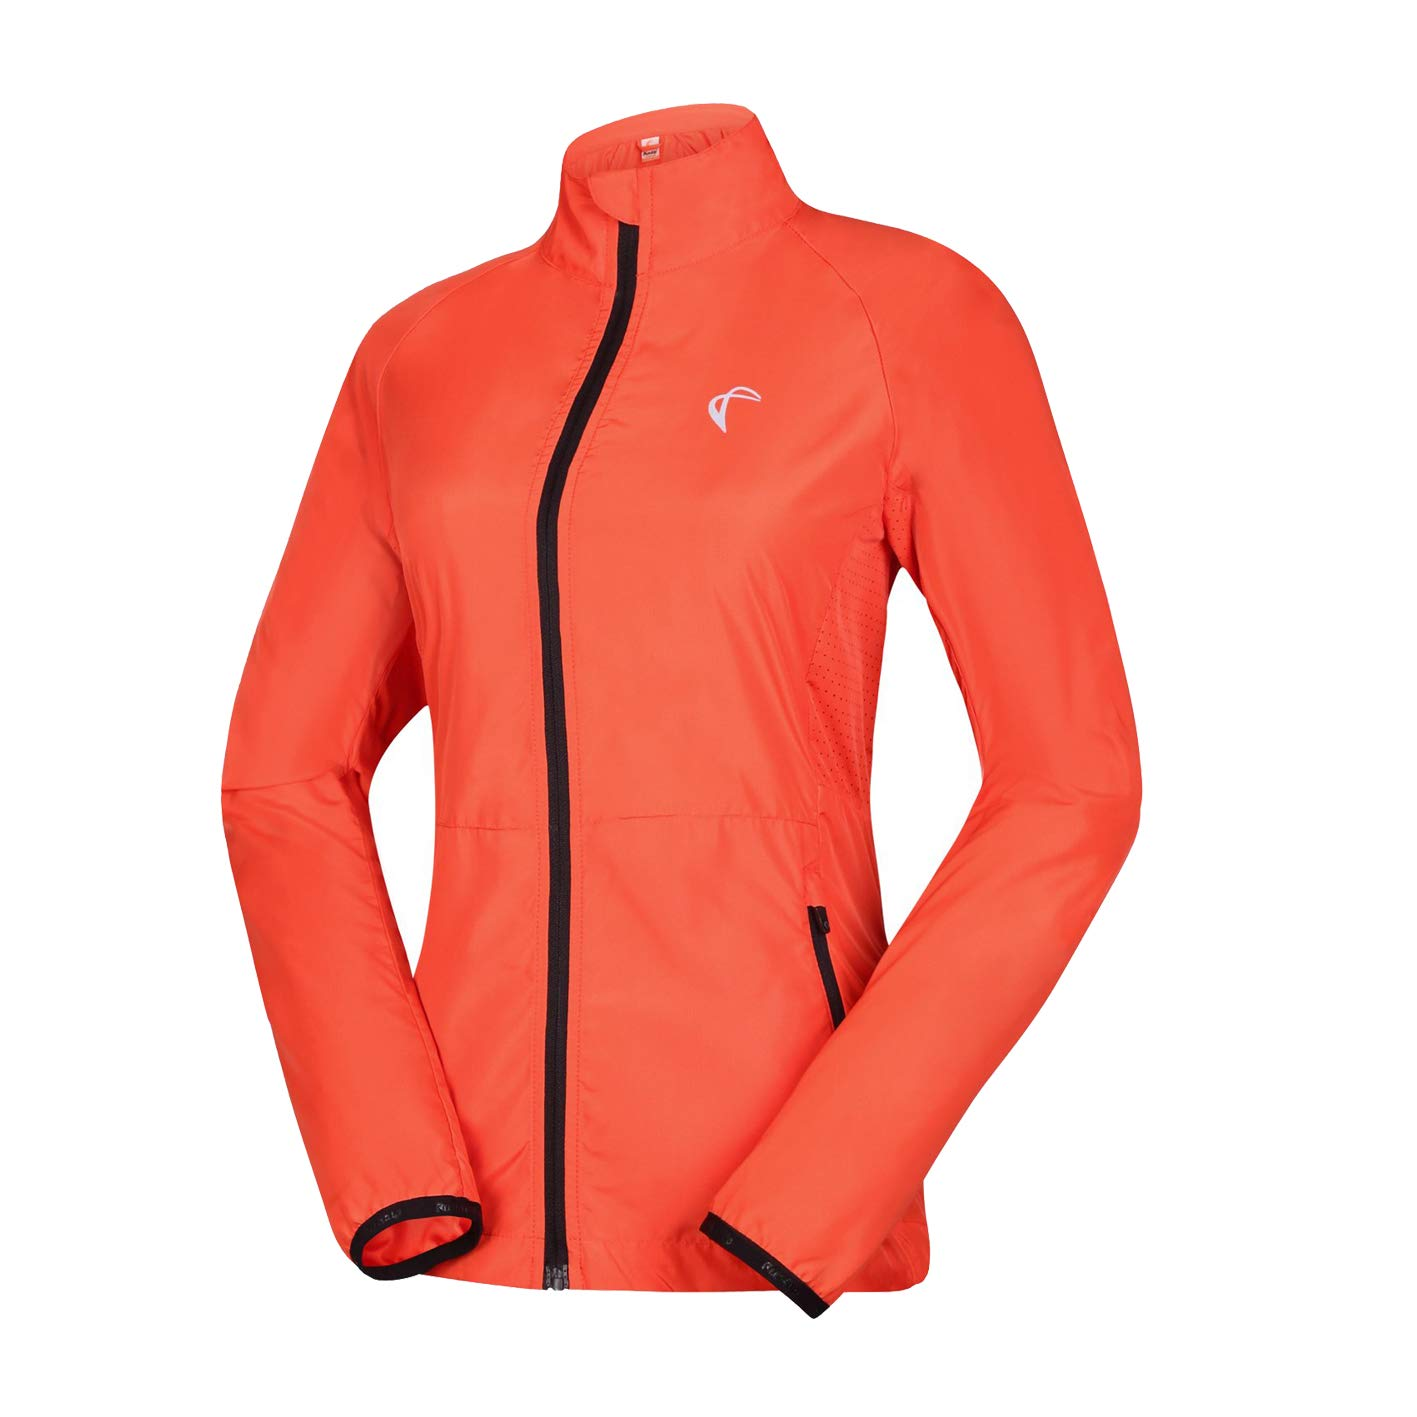 J.CARP Women's Packable Windbreaker Jacket, Super Lightweight and Visible, Outdoor Active Cycling Running Skin Coat, Orange S by J.CARP